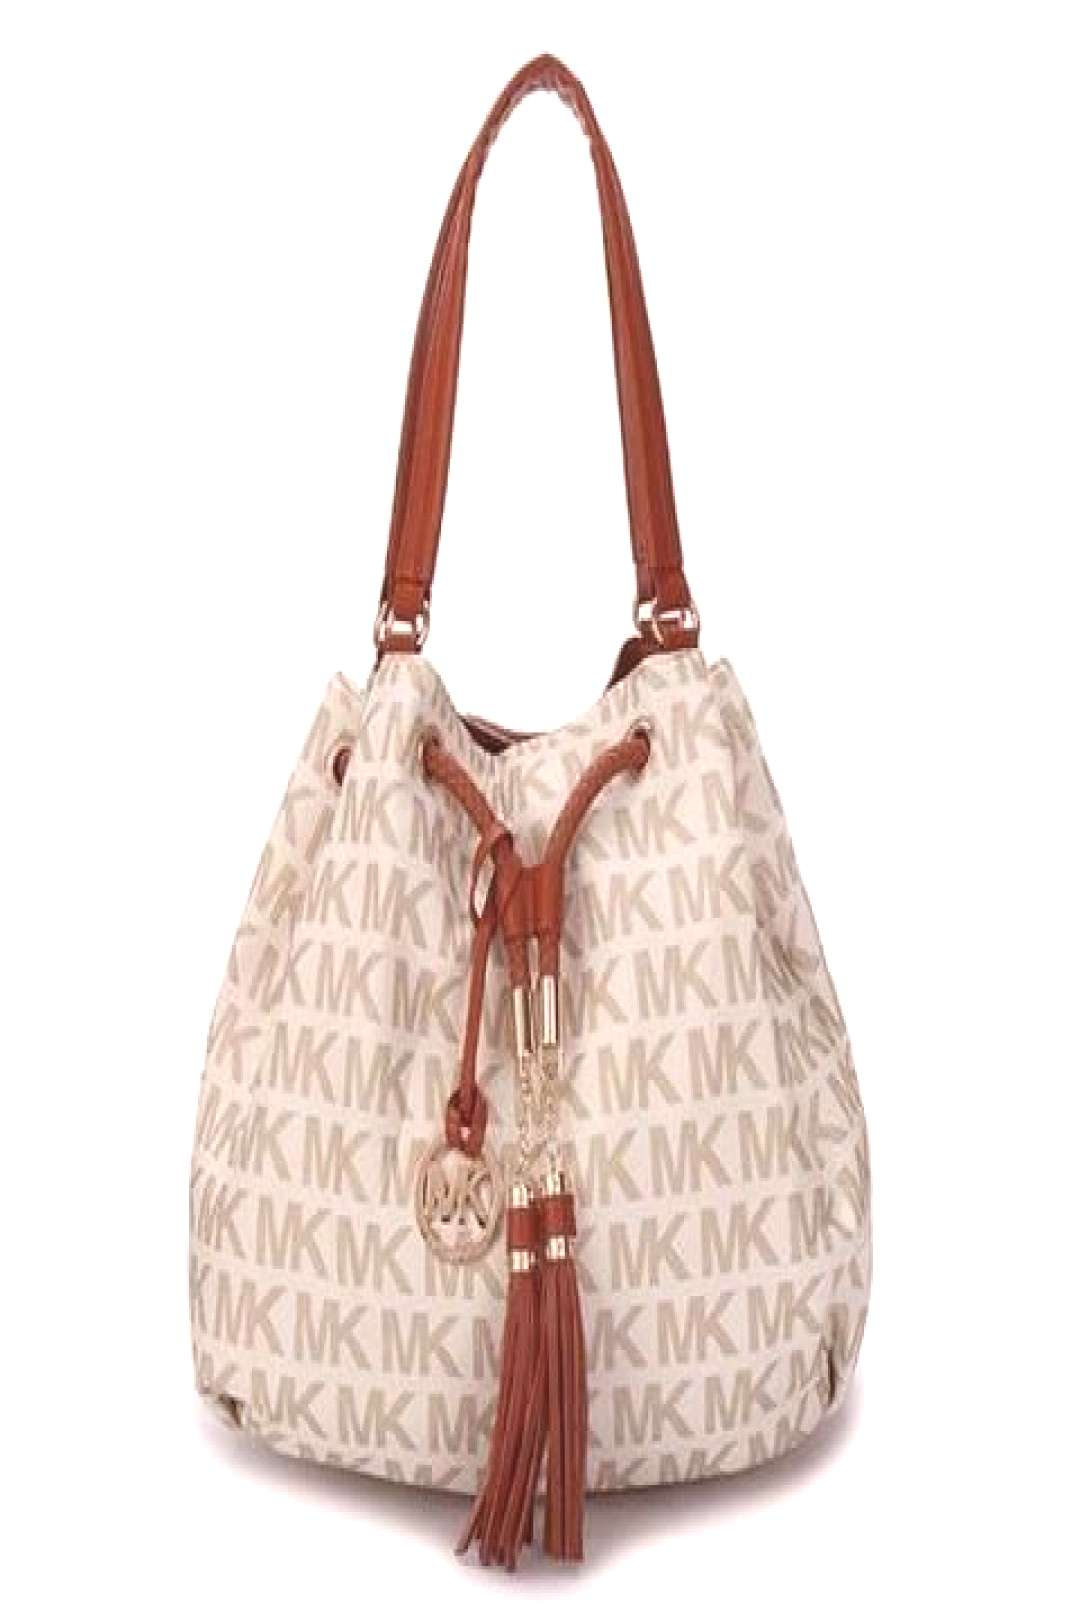 Michael Kors Logo Signature Large Vanilla Totes Outlet – Michael Kors STORE and CO.